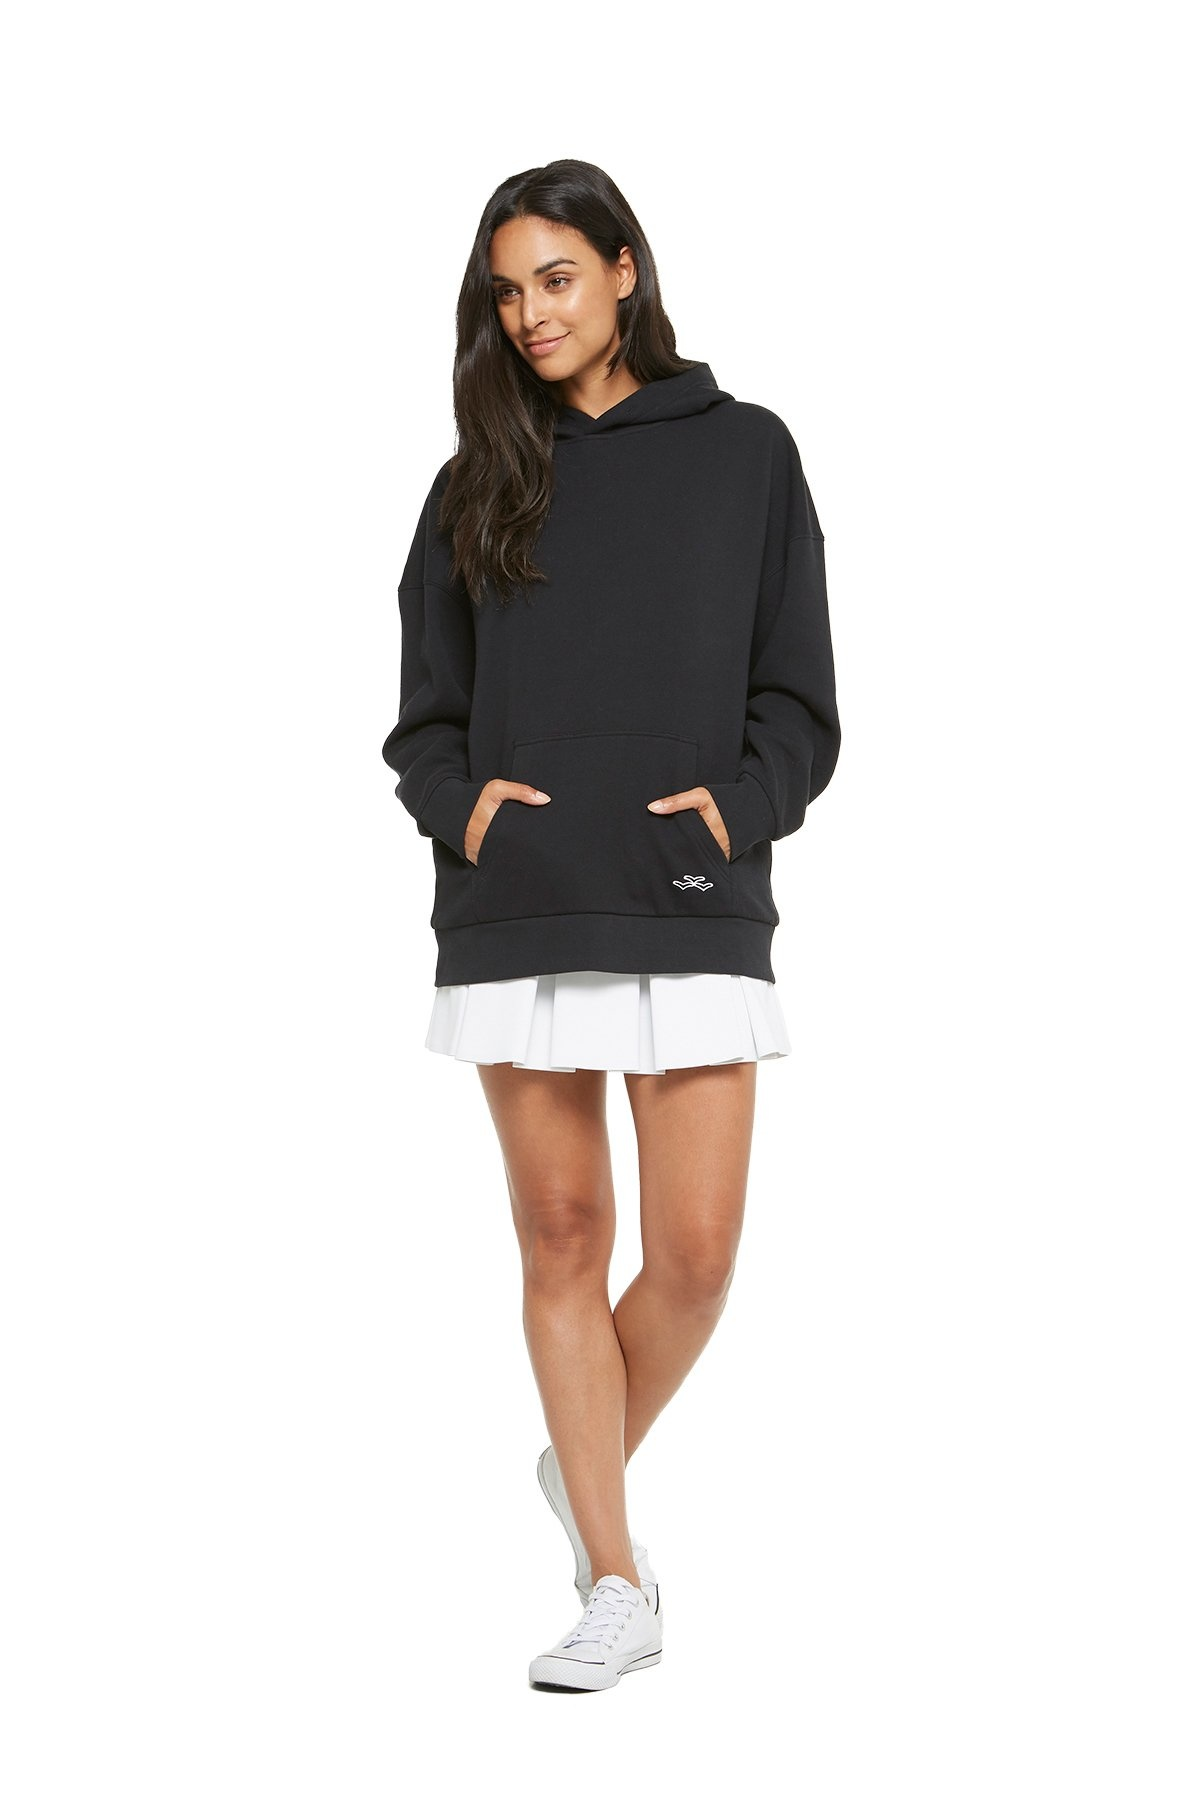 LAZYPANTS The Cooper Hoodie in Black